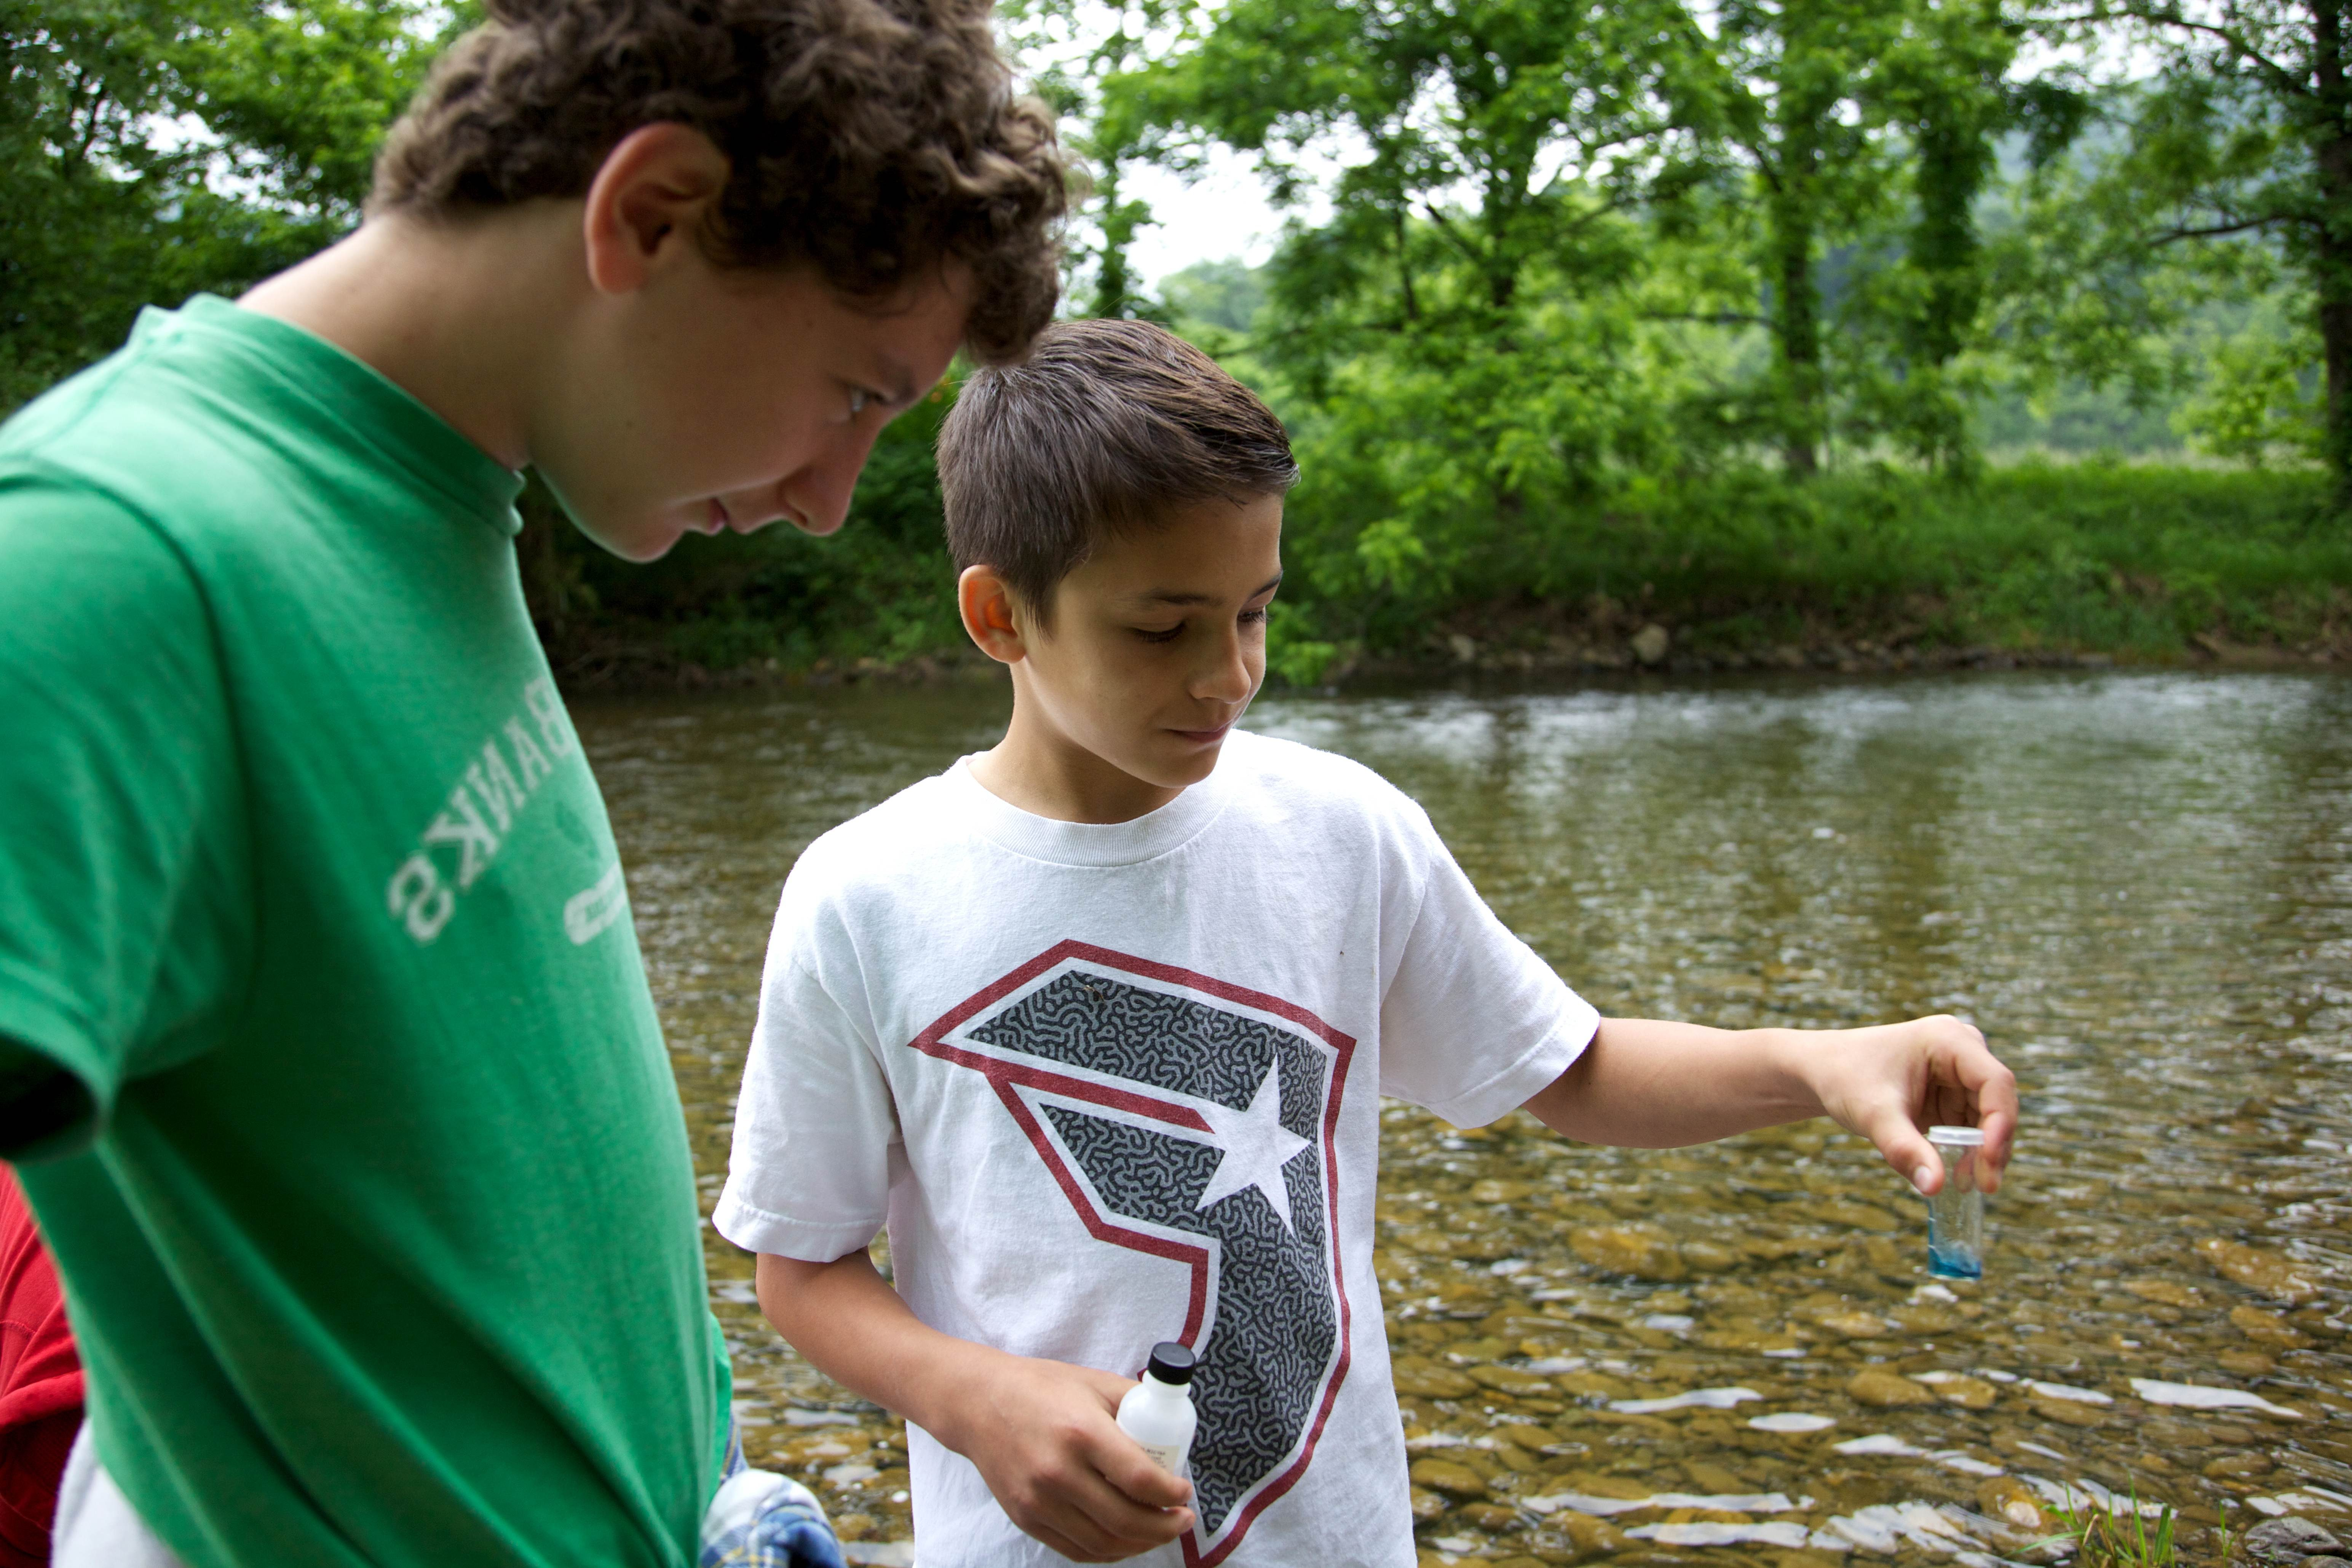 Free picture: youth, nature, kids, water, quality, sampling